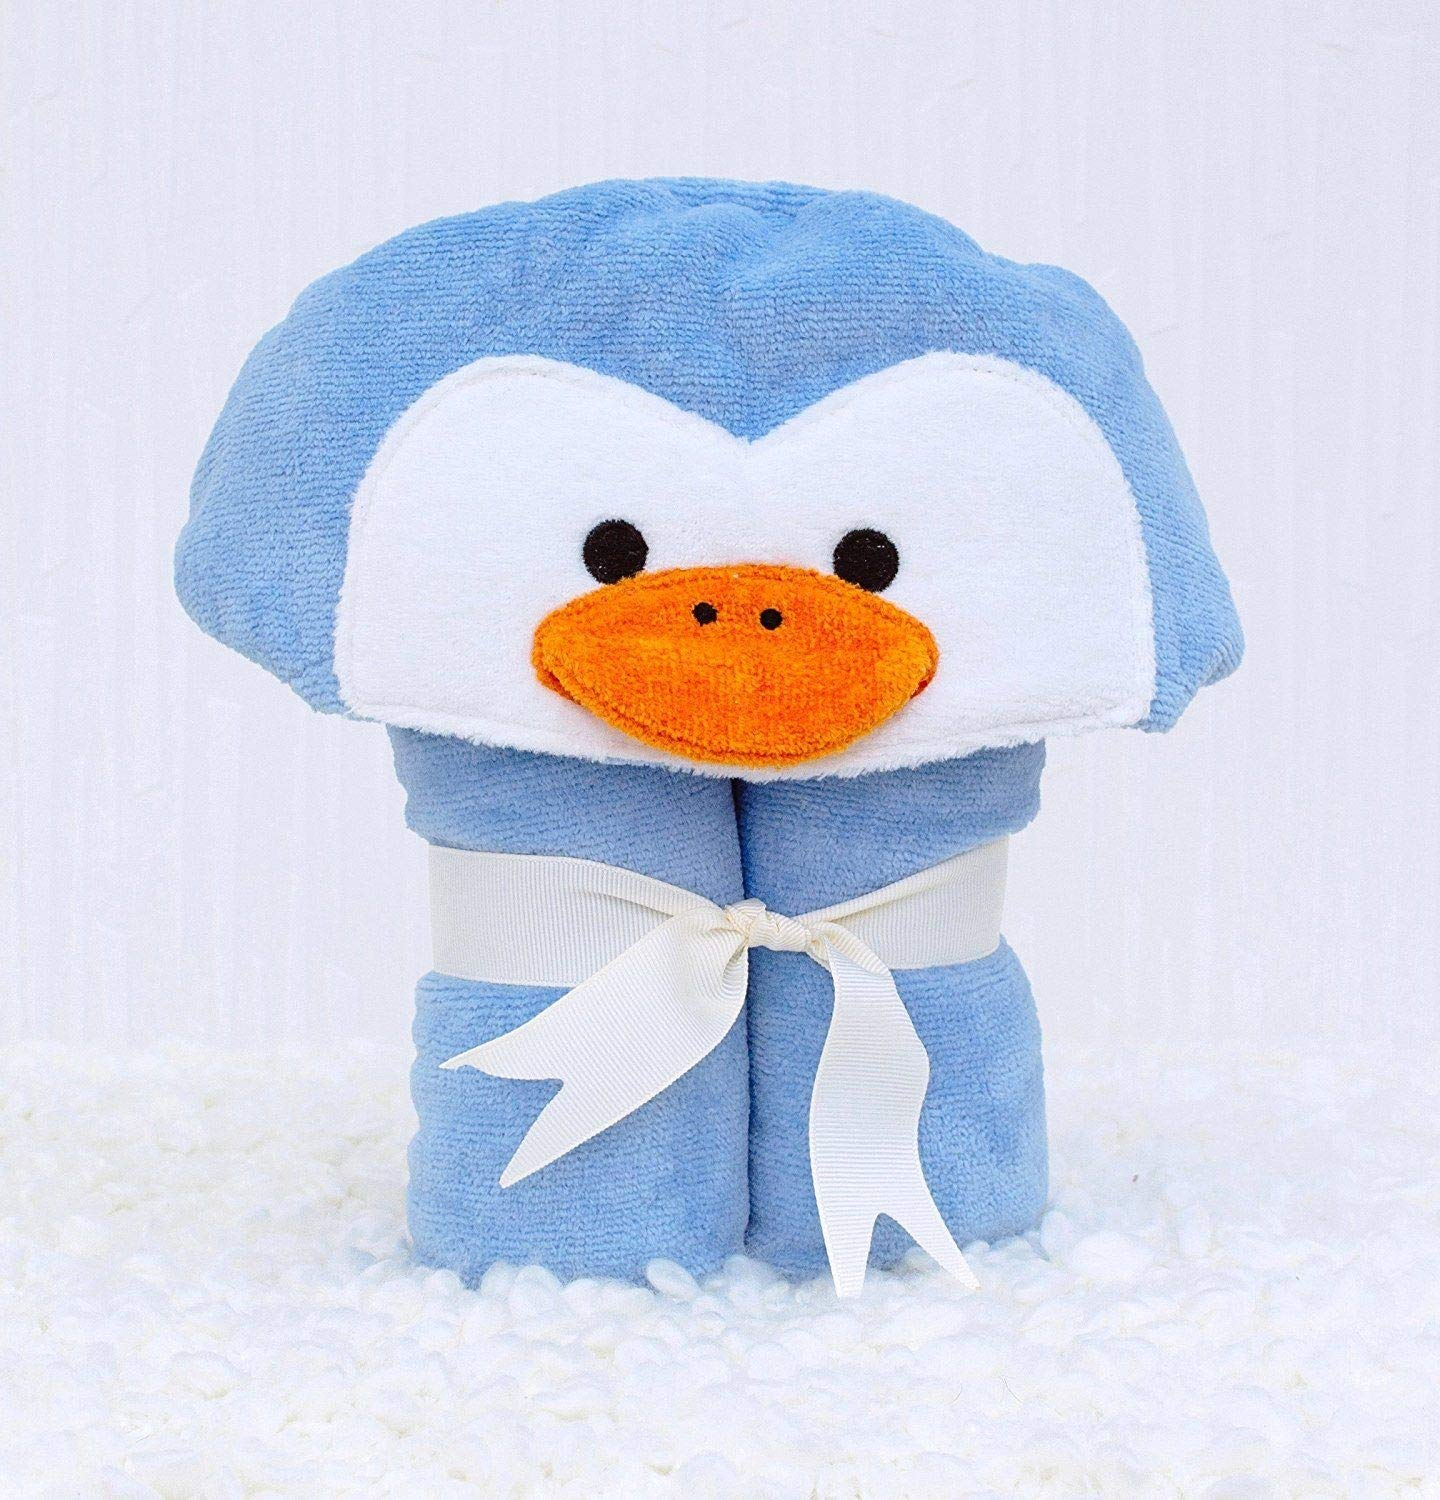 Amazon.com: Bathing Bunnies Penguin Baby Hooded Towel Sky Blue: Home & Kitchen